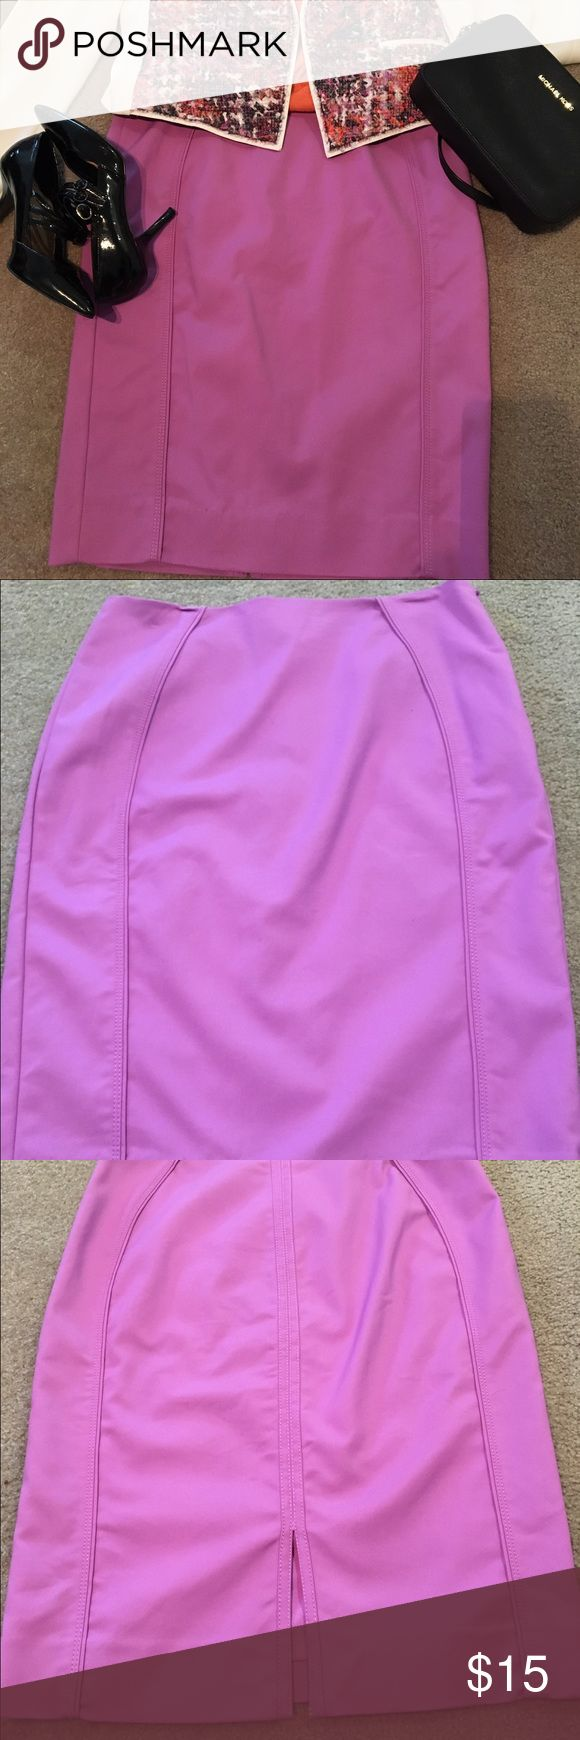 """WHBM purple pencil skirt This skirt is from their """"perfect form"""" line. The color is almost lilac. The seams in front and back are very flattering. It's fully lined and machine washable. Fabric is cotton, nylon and spandex. White House Black Market Skirts Pencil"""